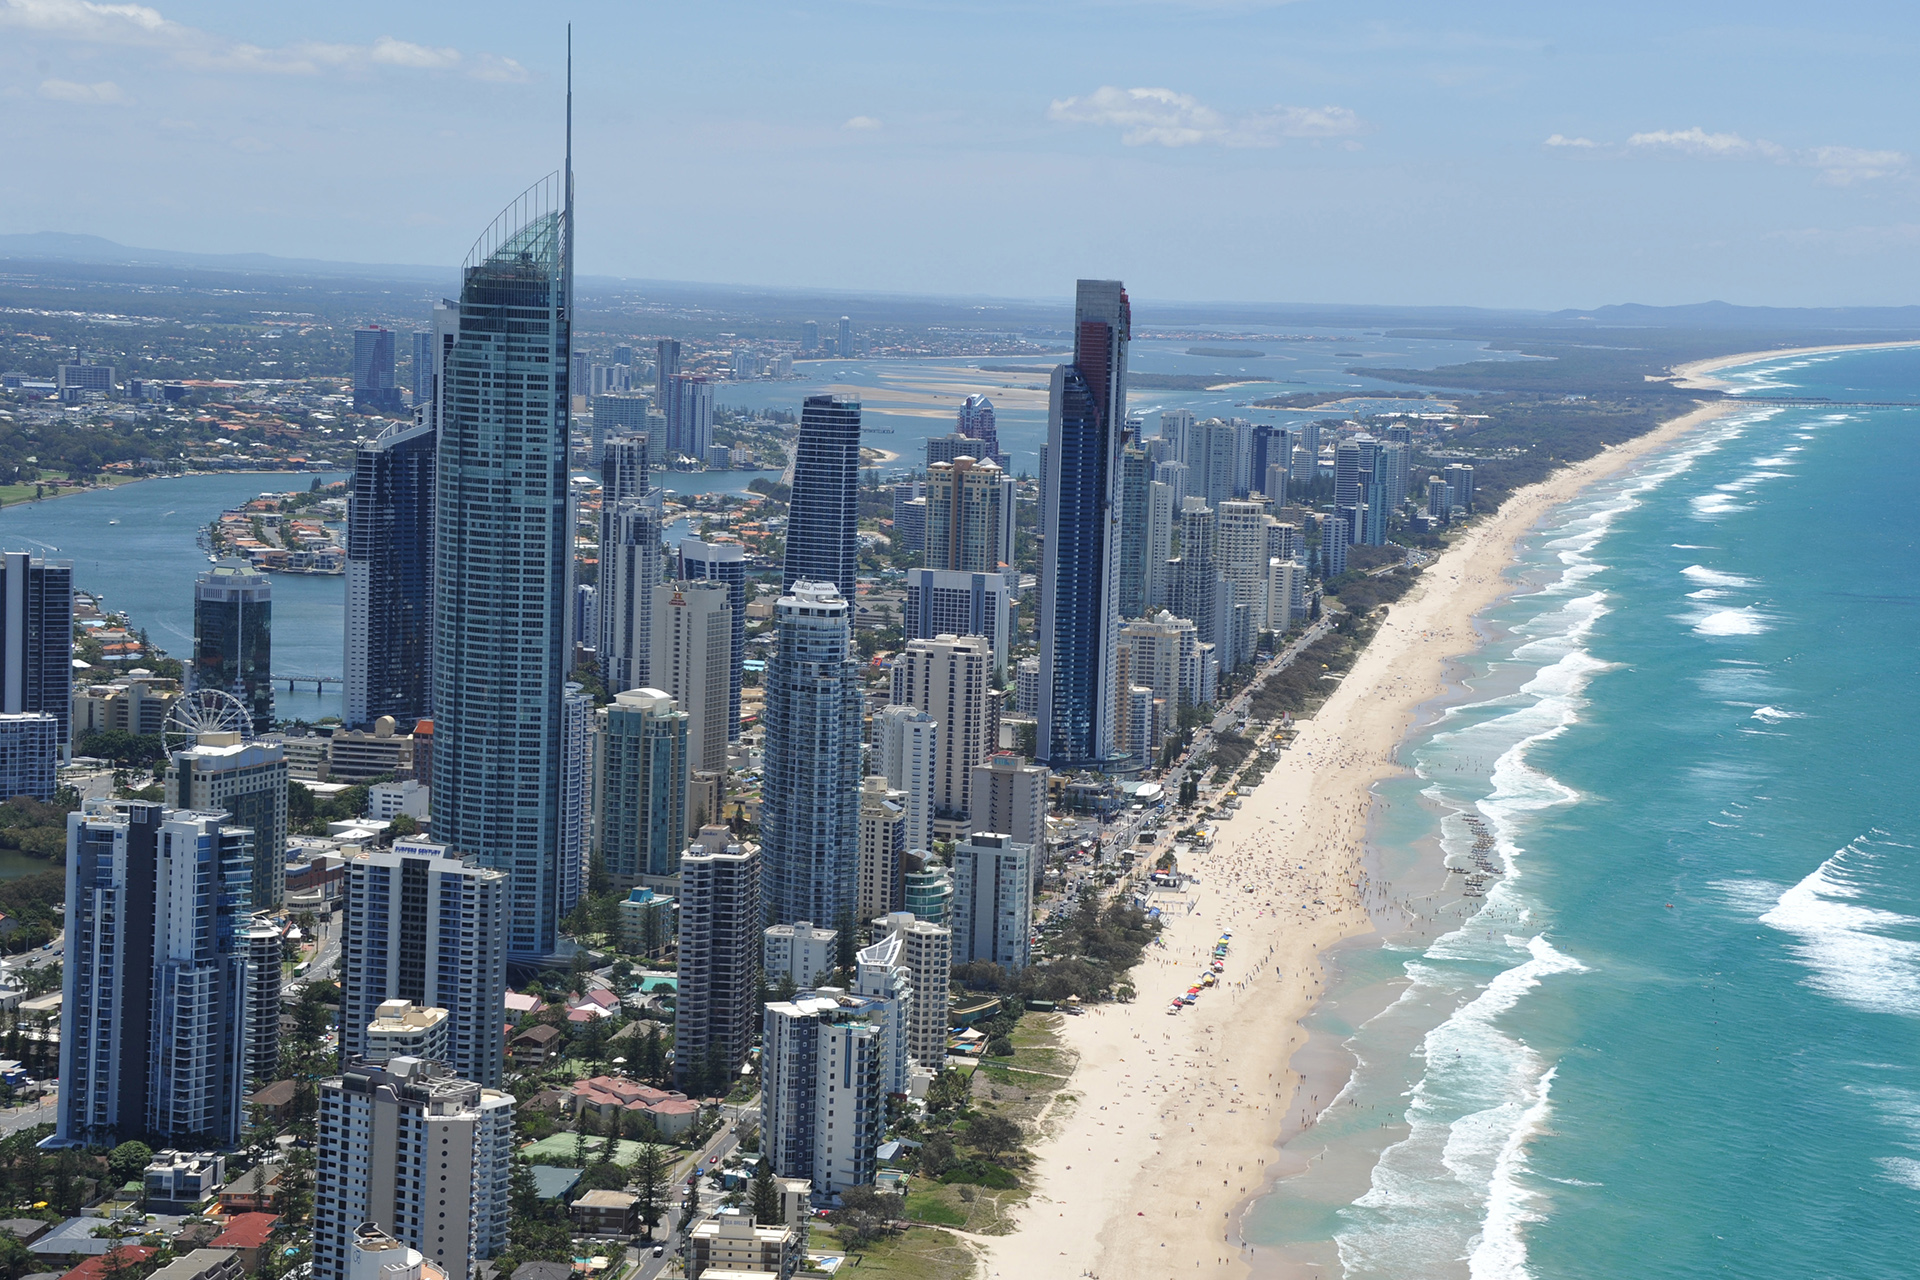 Aerial of Q1 and Surfers Paradise Precinct with People Beach_screen